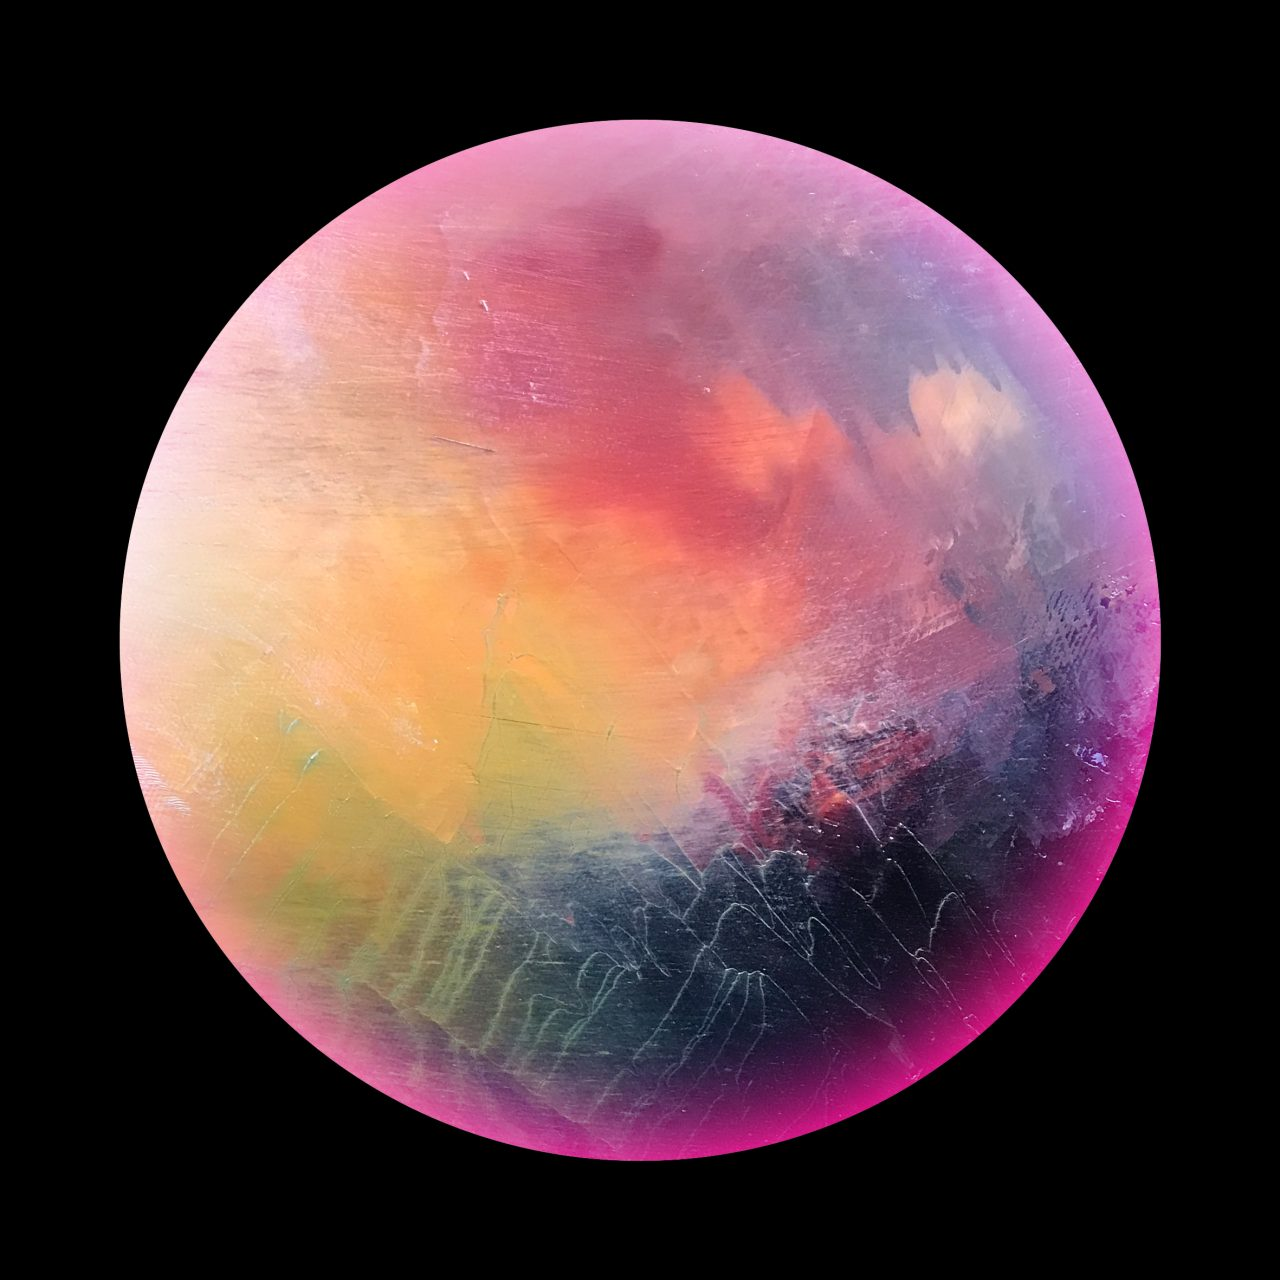 Aphroditia planet - from the Aether Worlds series